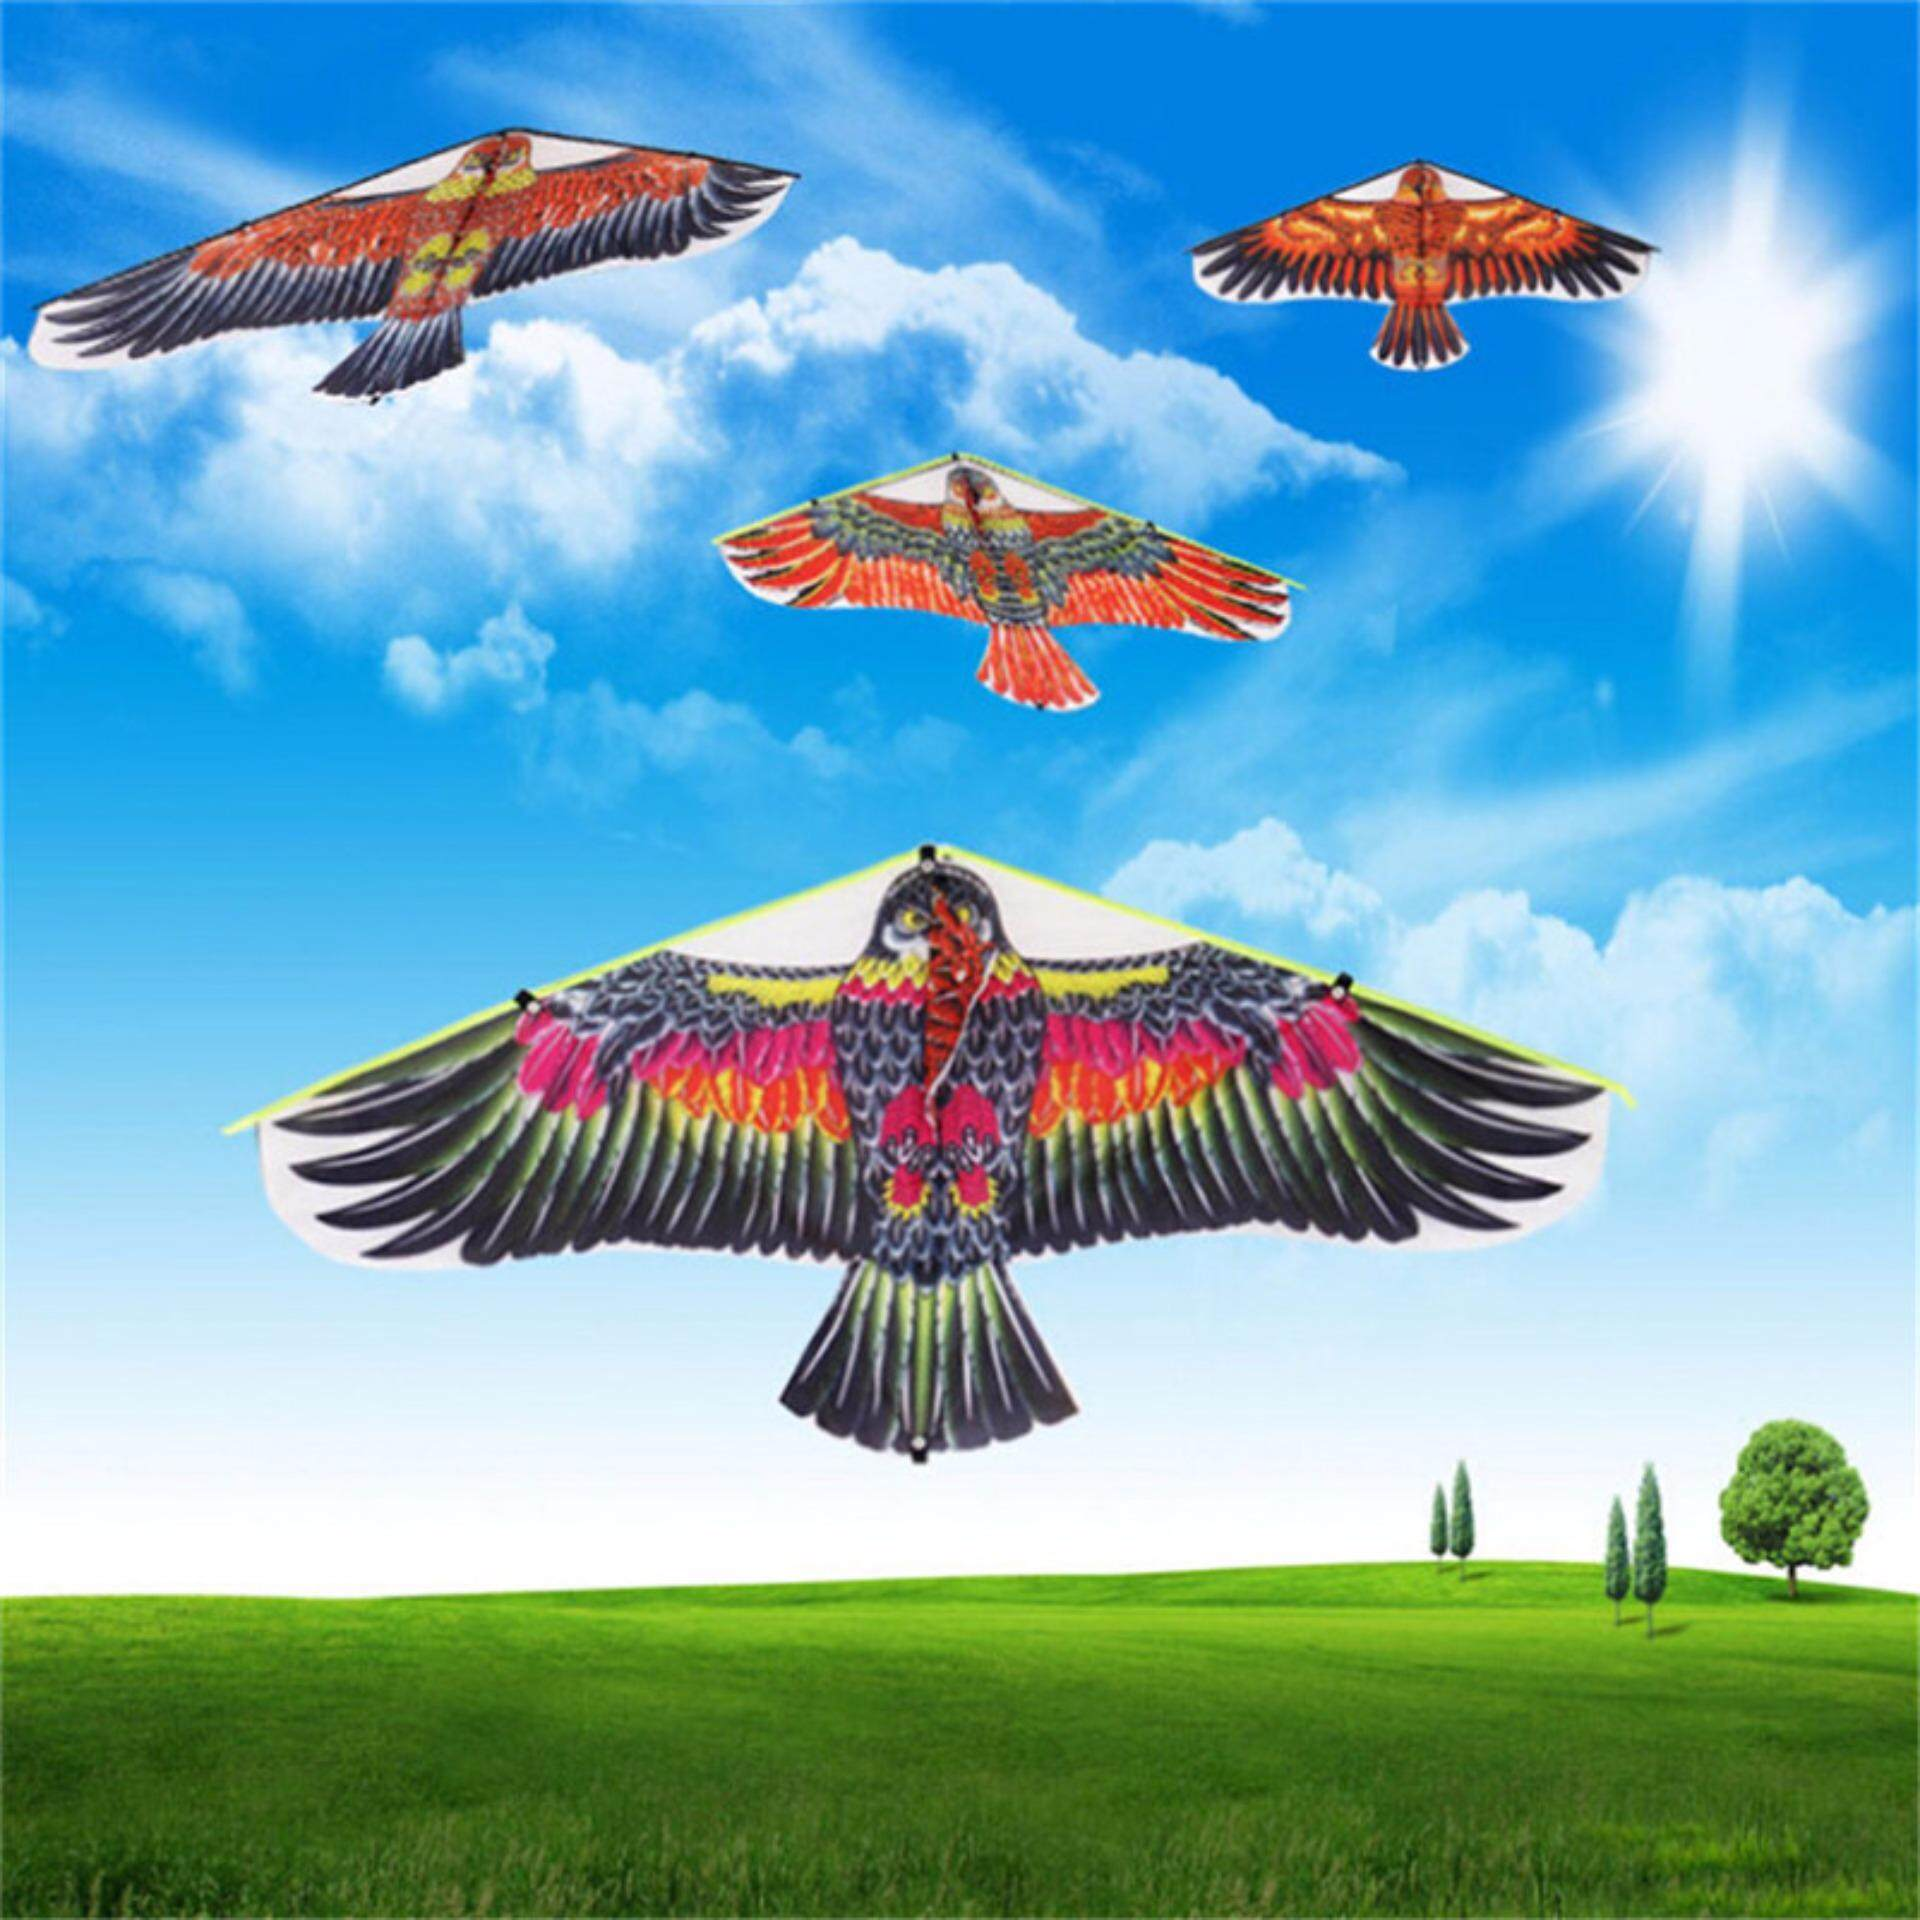 Flat Eagle Bird Kite Children Flying Bird Kites Outdoor Garden Toys By Graceful Bearing.